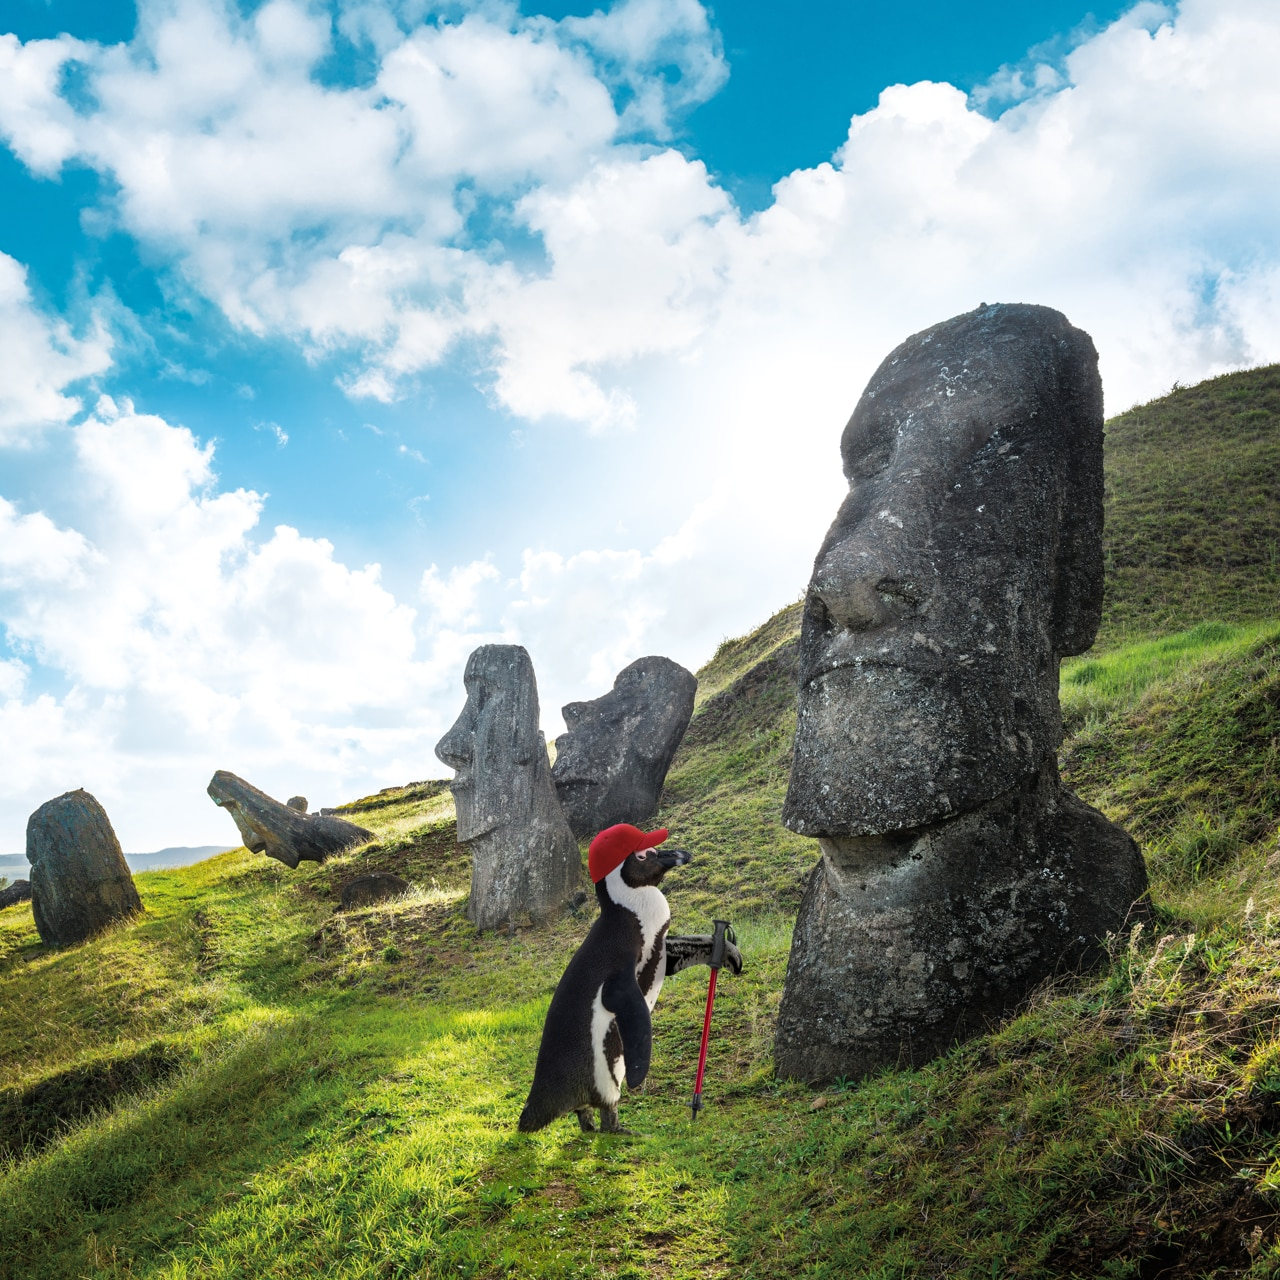 Percy Penguin checking out the giant statues of Easter Island.